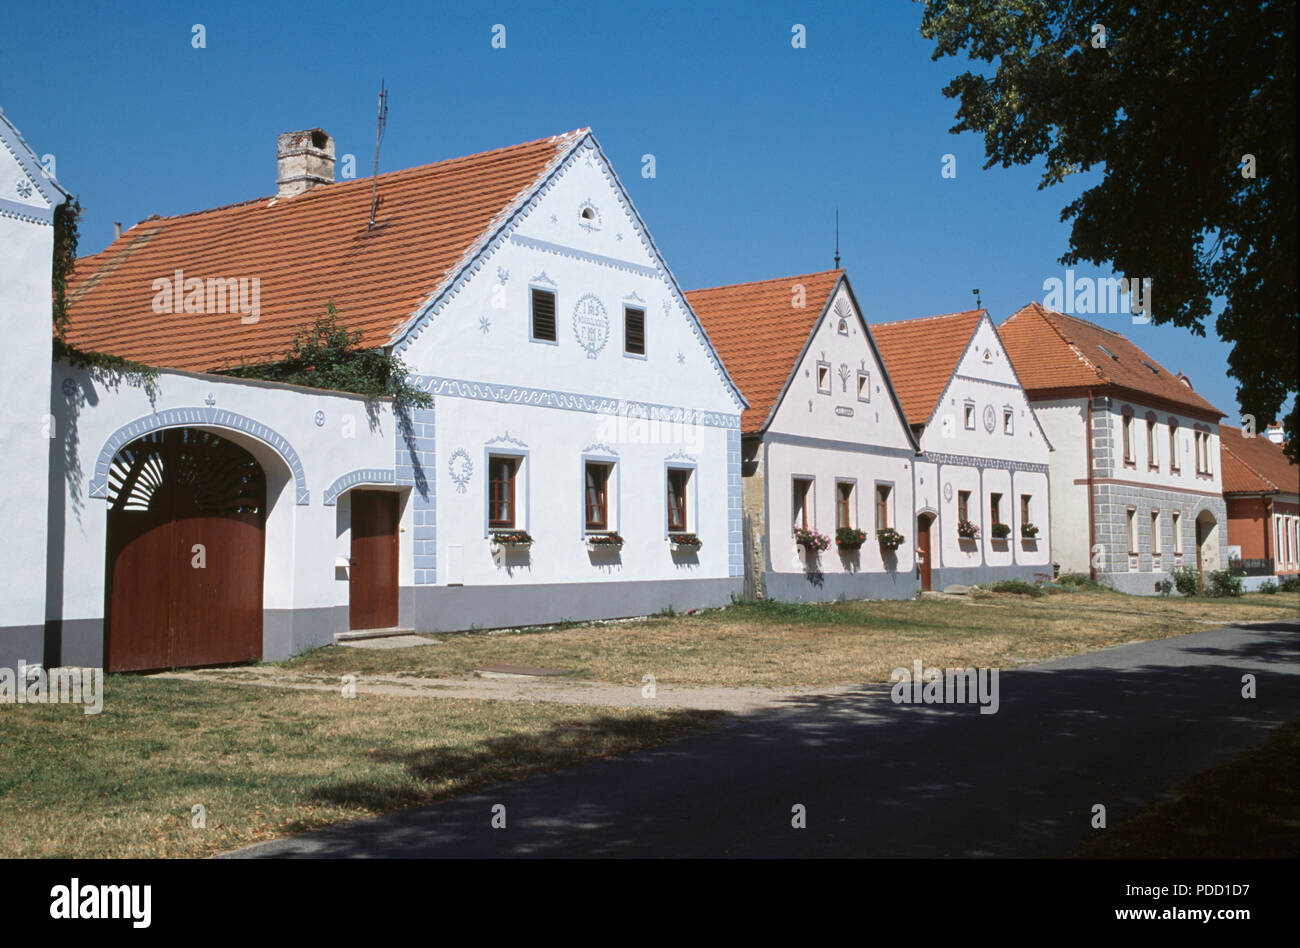 Ancient buildings in the historic village of Holasovice in South Bohemia in the Czech Republic - Stock Image